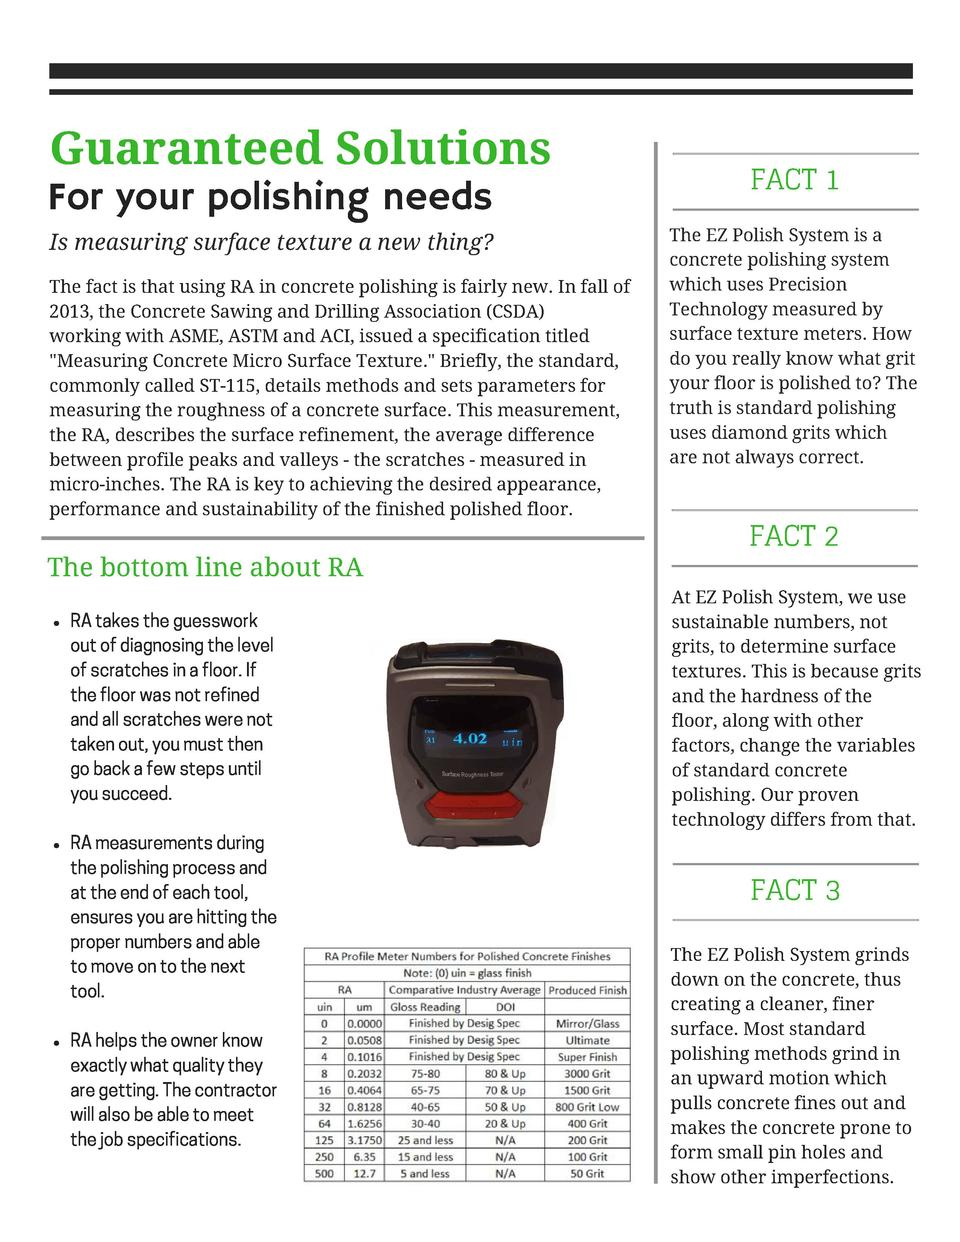 Guaranteed Solutions  For your polishing needs  Is measuring surface texture a new thing  The fact is that using RA in con...